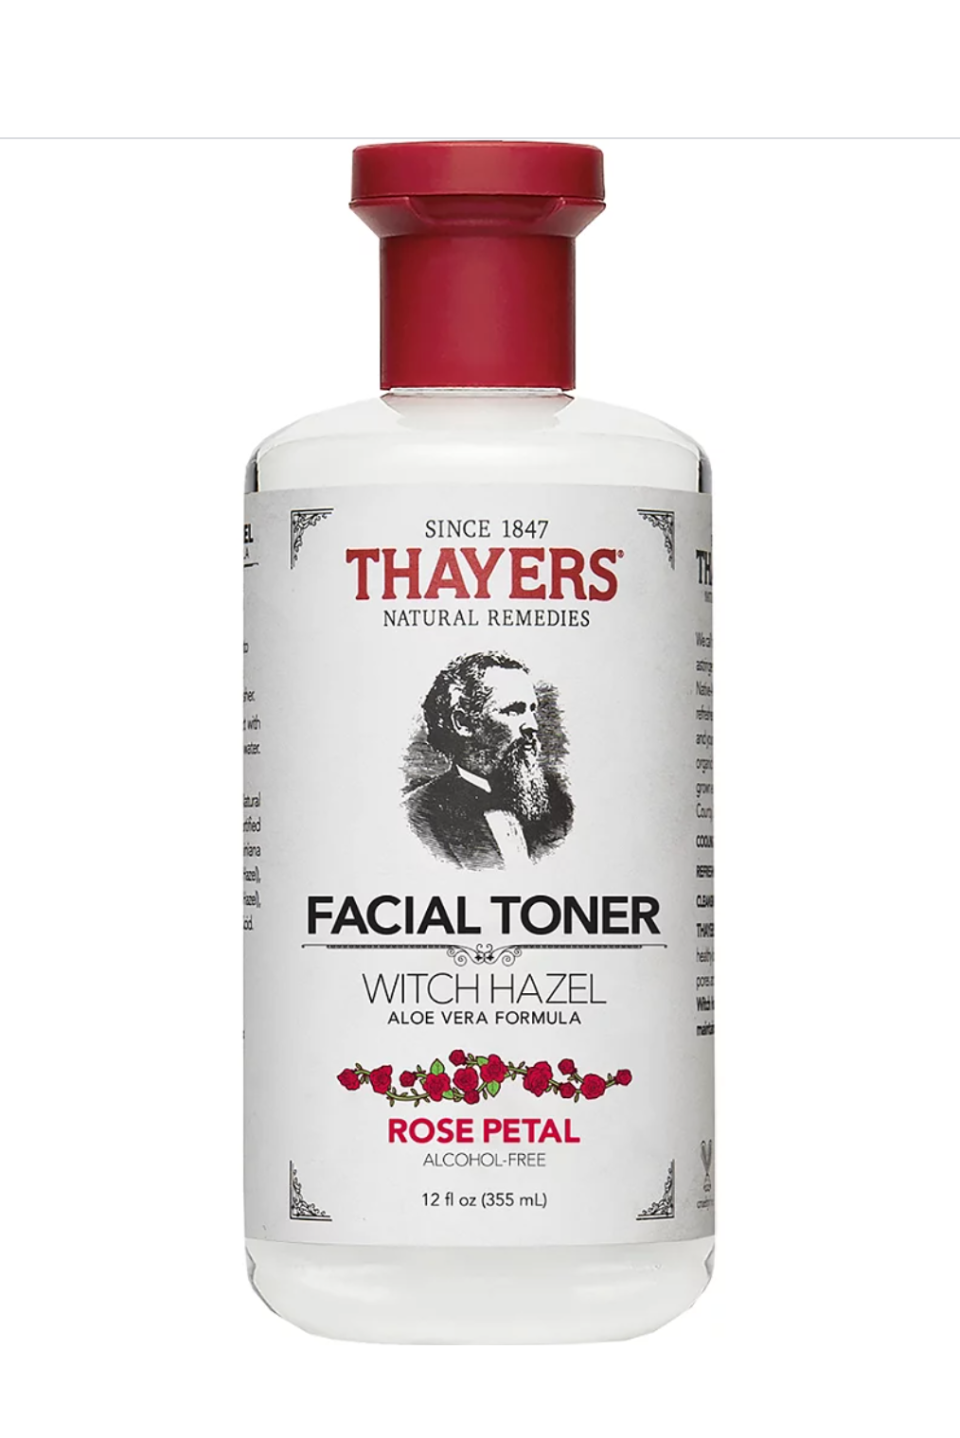 "<p><strong>Thayers</strong></p><p>ulta.com</p><p><a href=""https://go.redirectingat.com?id=74968X1596630&url=https%3A%2F%2Fwww.ulta.com%2Falcohol-free-witch-hazel-facial-toner%3FproductId%3Dpimprod2006476&sref=https%3A%2F%2Fwww.elle.com%2Fbeauty%2Fg33002446%2Fulta-fourth-of-july-sale-2020%2F"" rel=""nofollow noopener"" target=""_blank"" data-ylk=""slk:SHOP IT"" class=""link rapid-noclick-resp"">SHOP IT </a></p><p><del>$10.95</del><strong><br>$8.21</strong><br></p><p>There's a reason why Thayers' witch hazel facial toner is a must-have for beauty buffs. Infused with aloe vera, this option simultaneously cleanses the skin and removes dry, flaky patches. </p>"